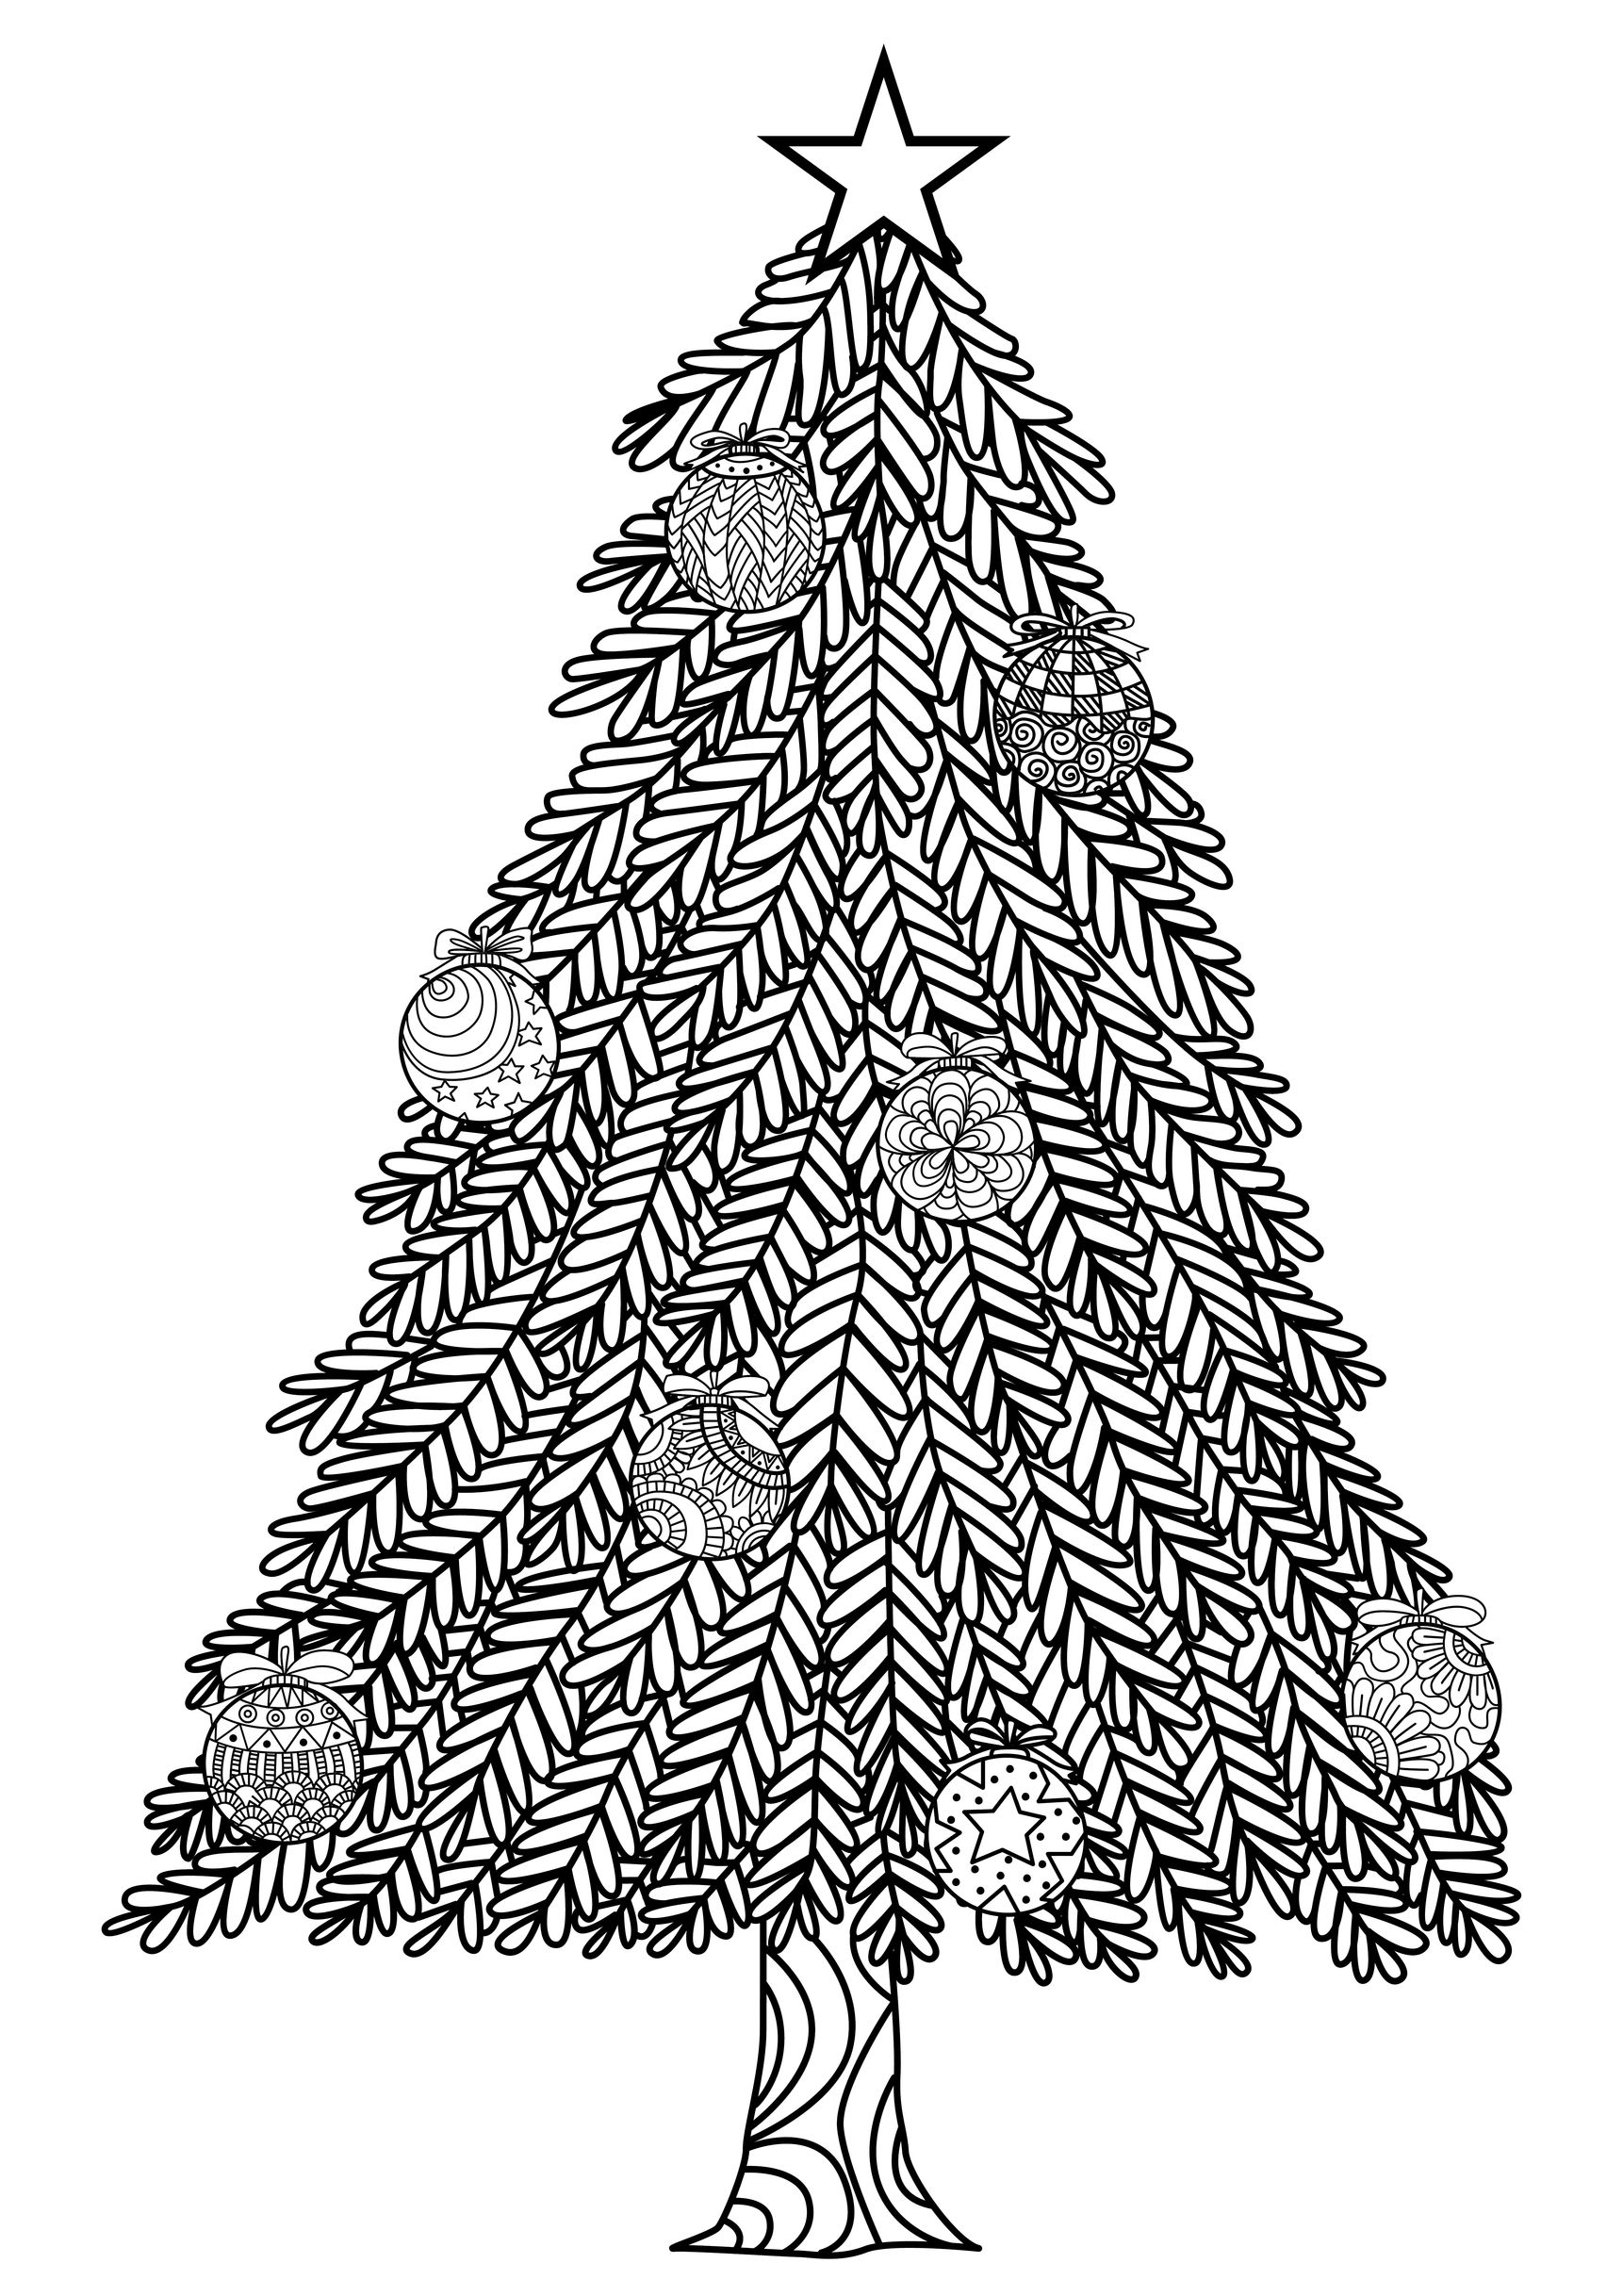 Christmas Coloring Pages For Adults Coloring Adult Ornaments Coloring Pages For Adults